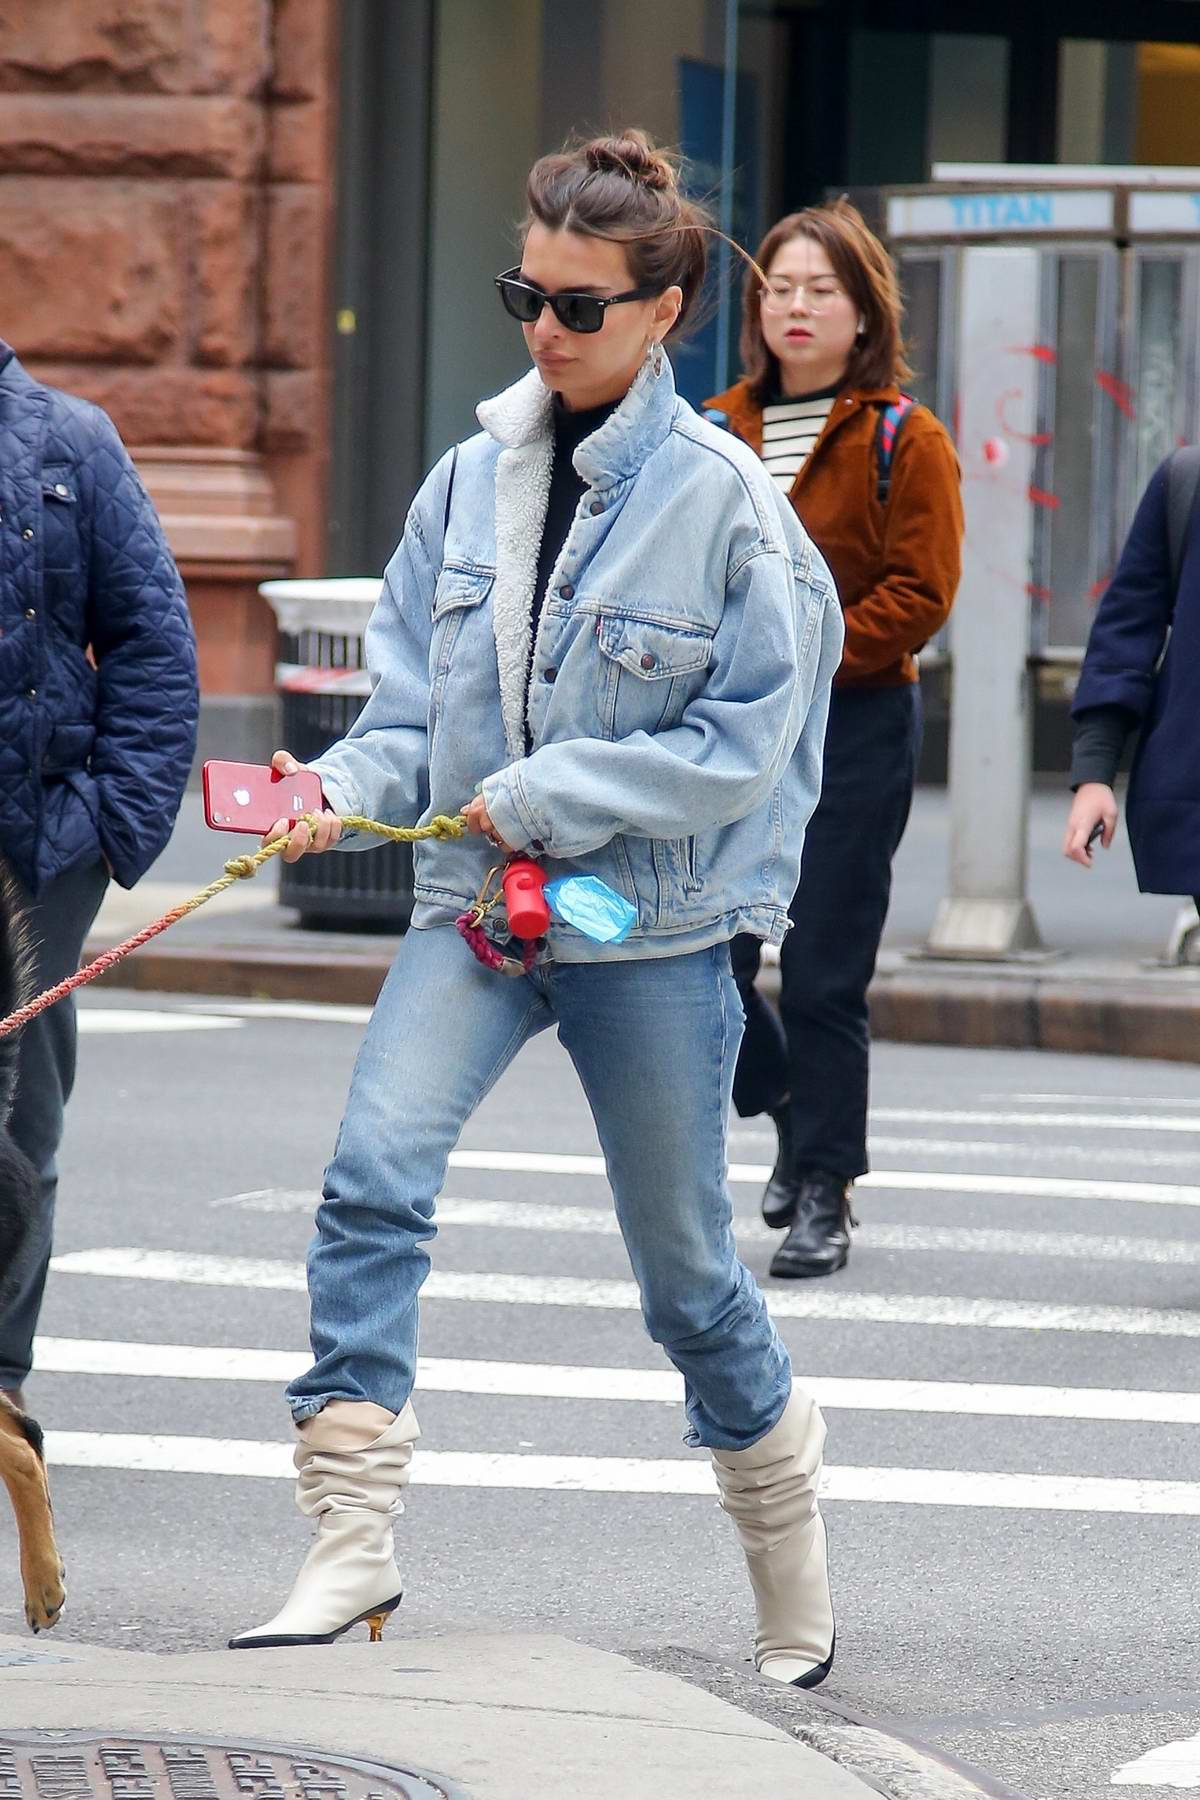 Emily Ratajkowski rocks double denim while out for a stroll with her dog in New York City